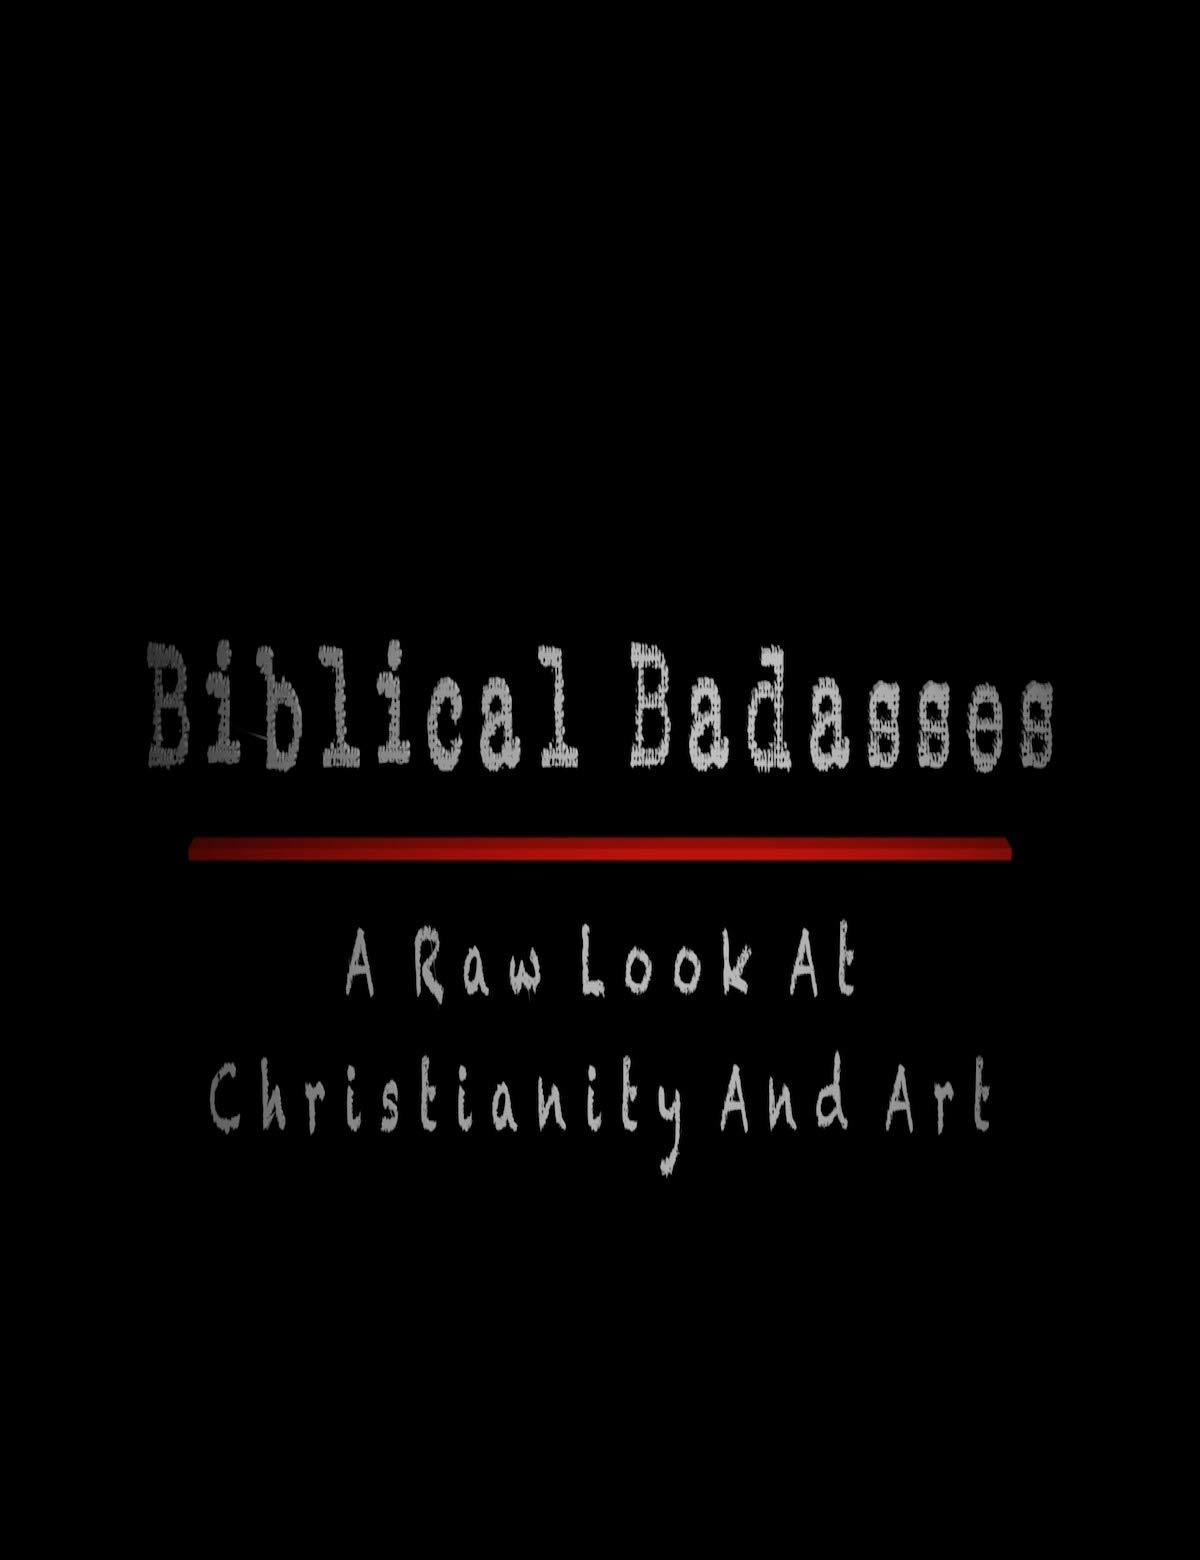 Biblical Badasses: A Raw Look At Christianity And Art